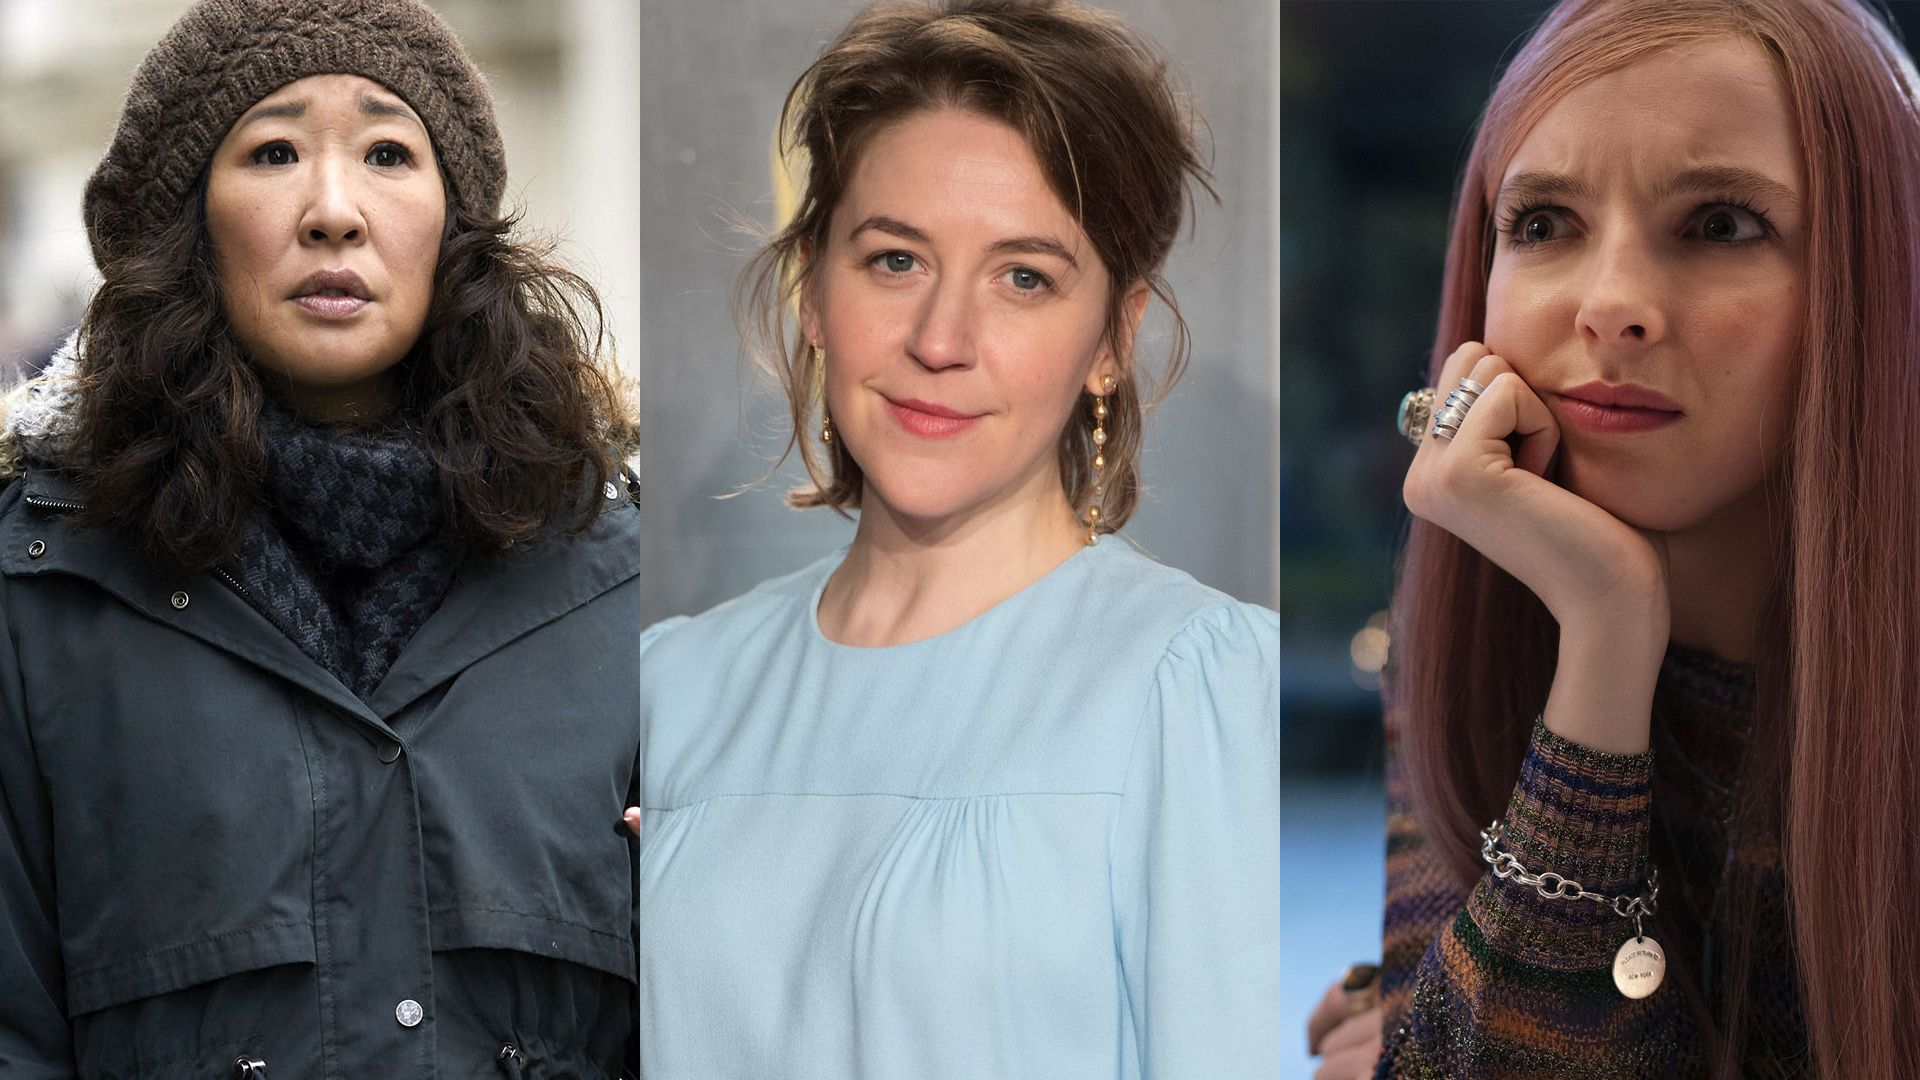 Killing Eve : des acteurs de Game of Thrones et Harry Potter rejoignent le casting de la saison 3